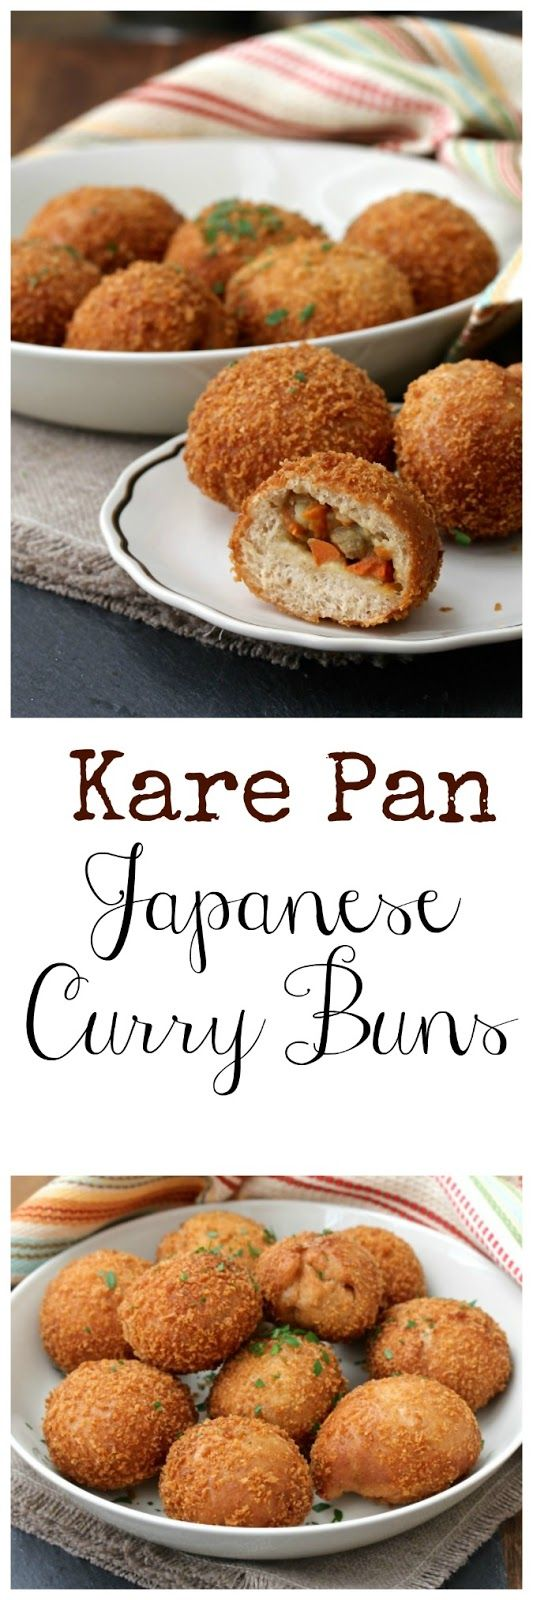 These Kare Pan, or Curry Buns, consist of Japanese curry wrapped in yeasted bread dough, coated with panko, and then deep fried.